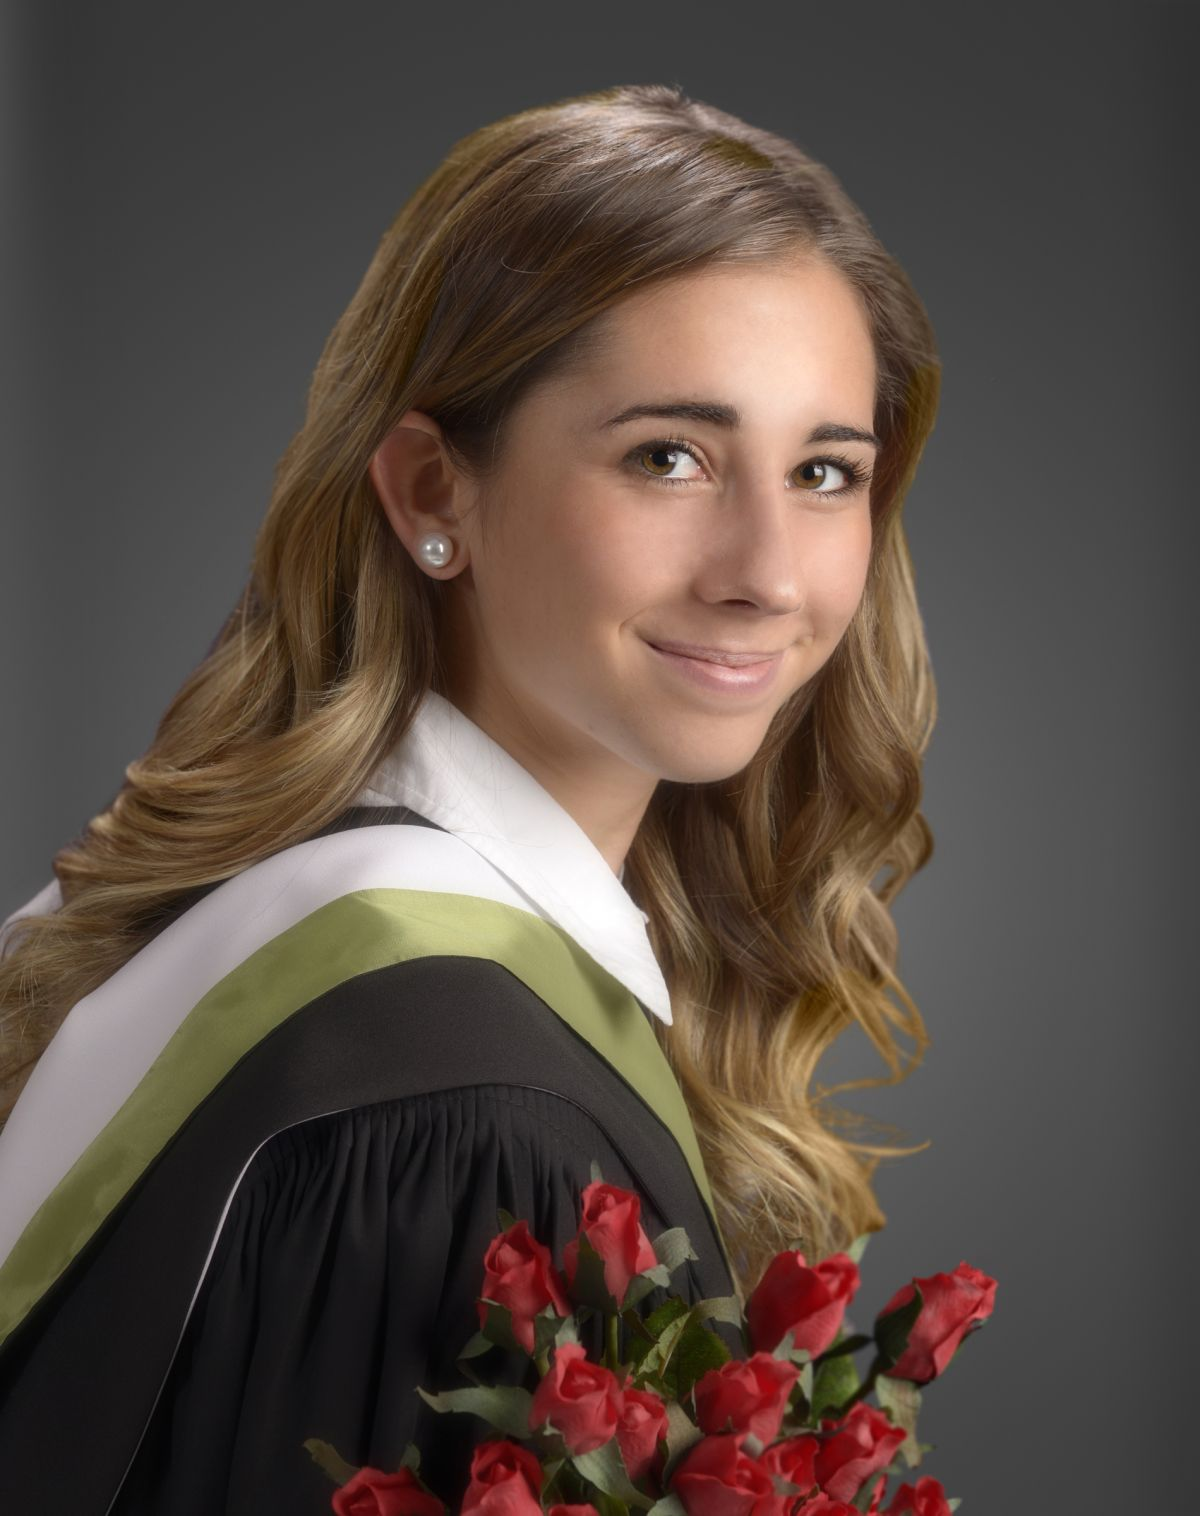 graduation photography toronto